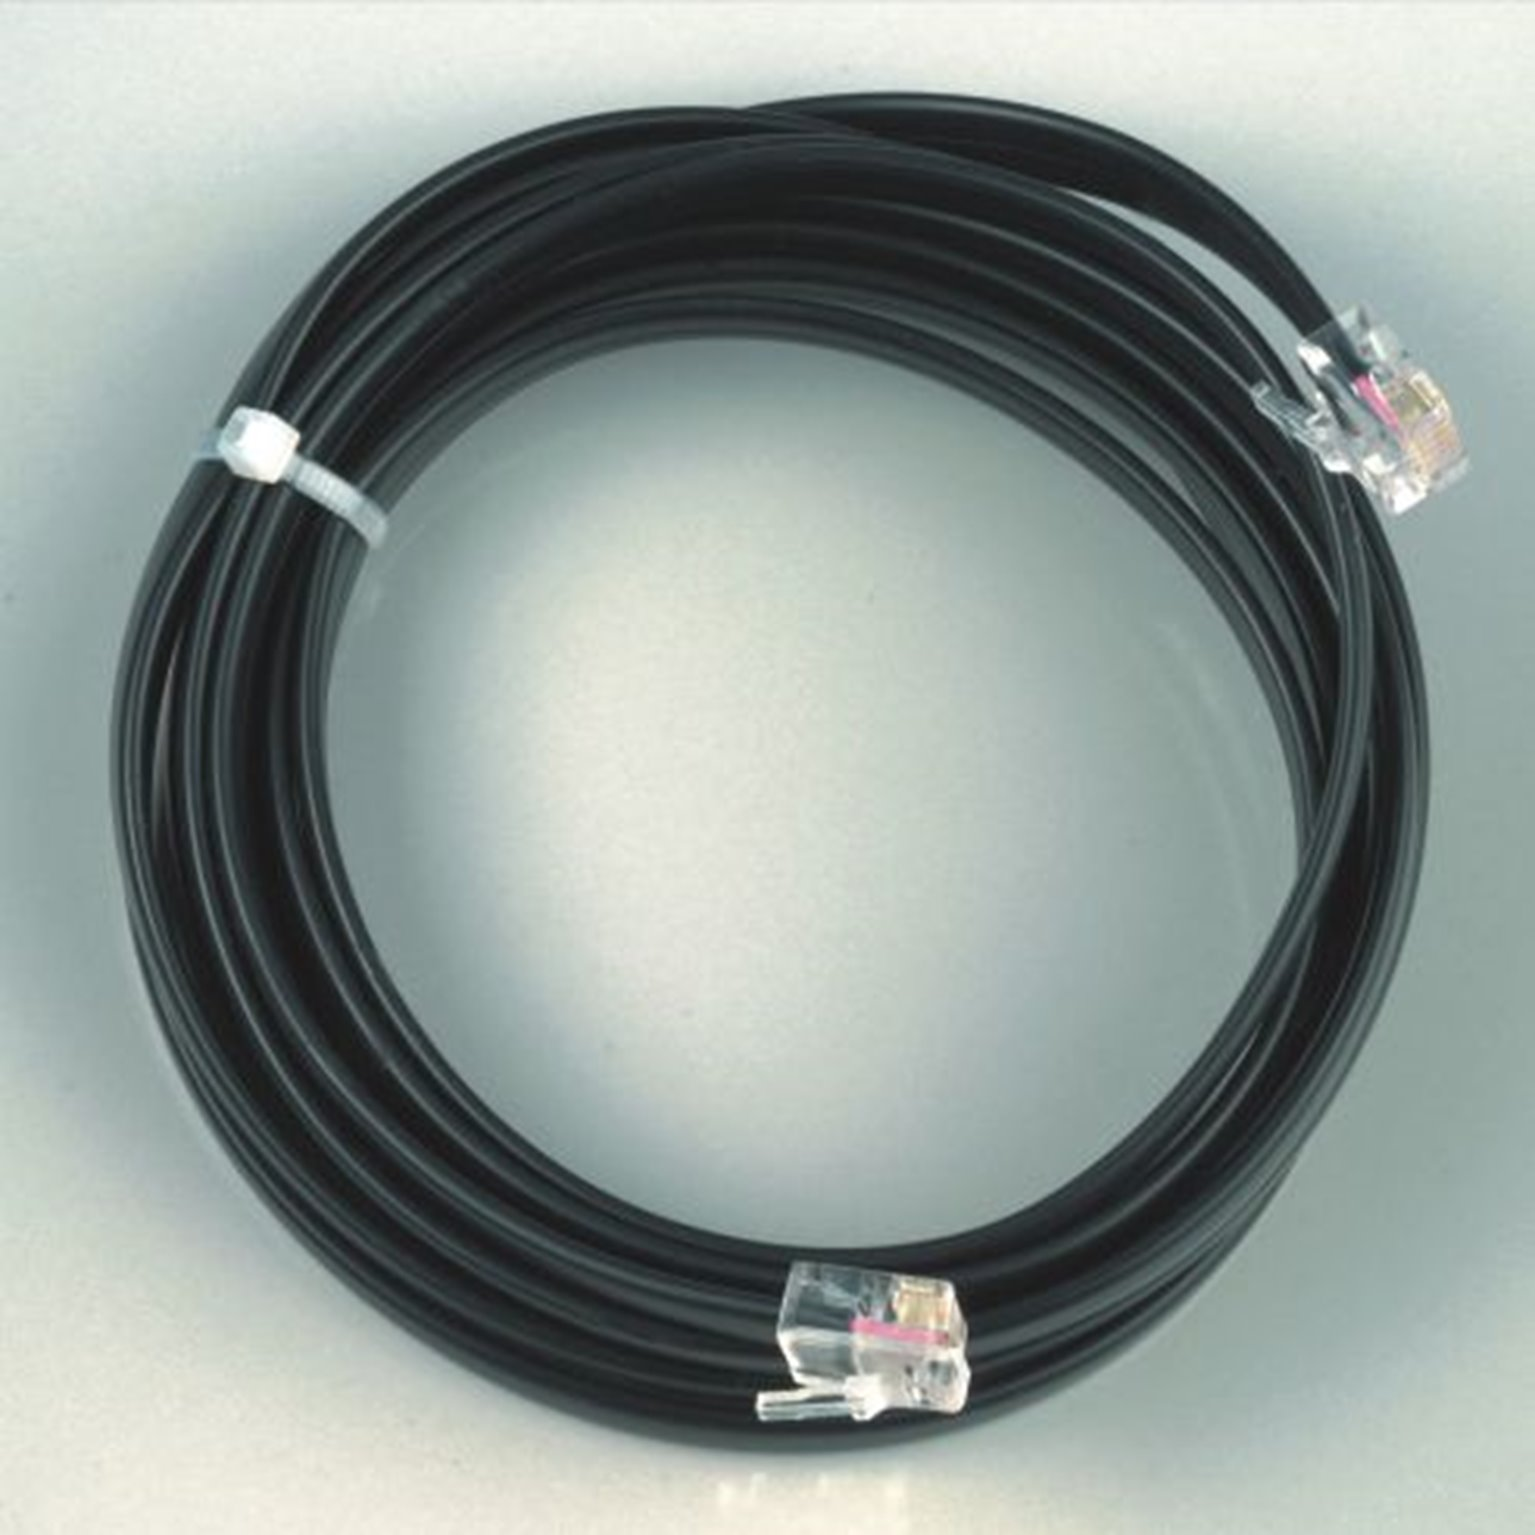 LY161 XpressNet Cable 5m